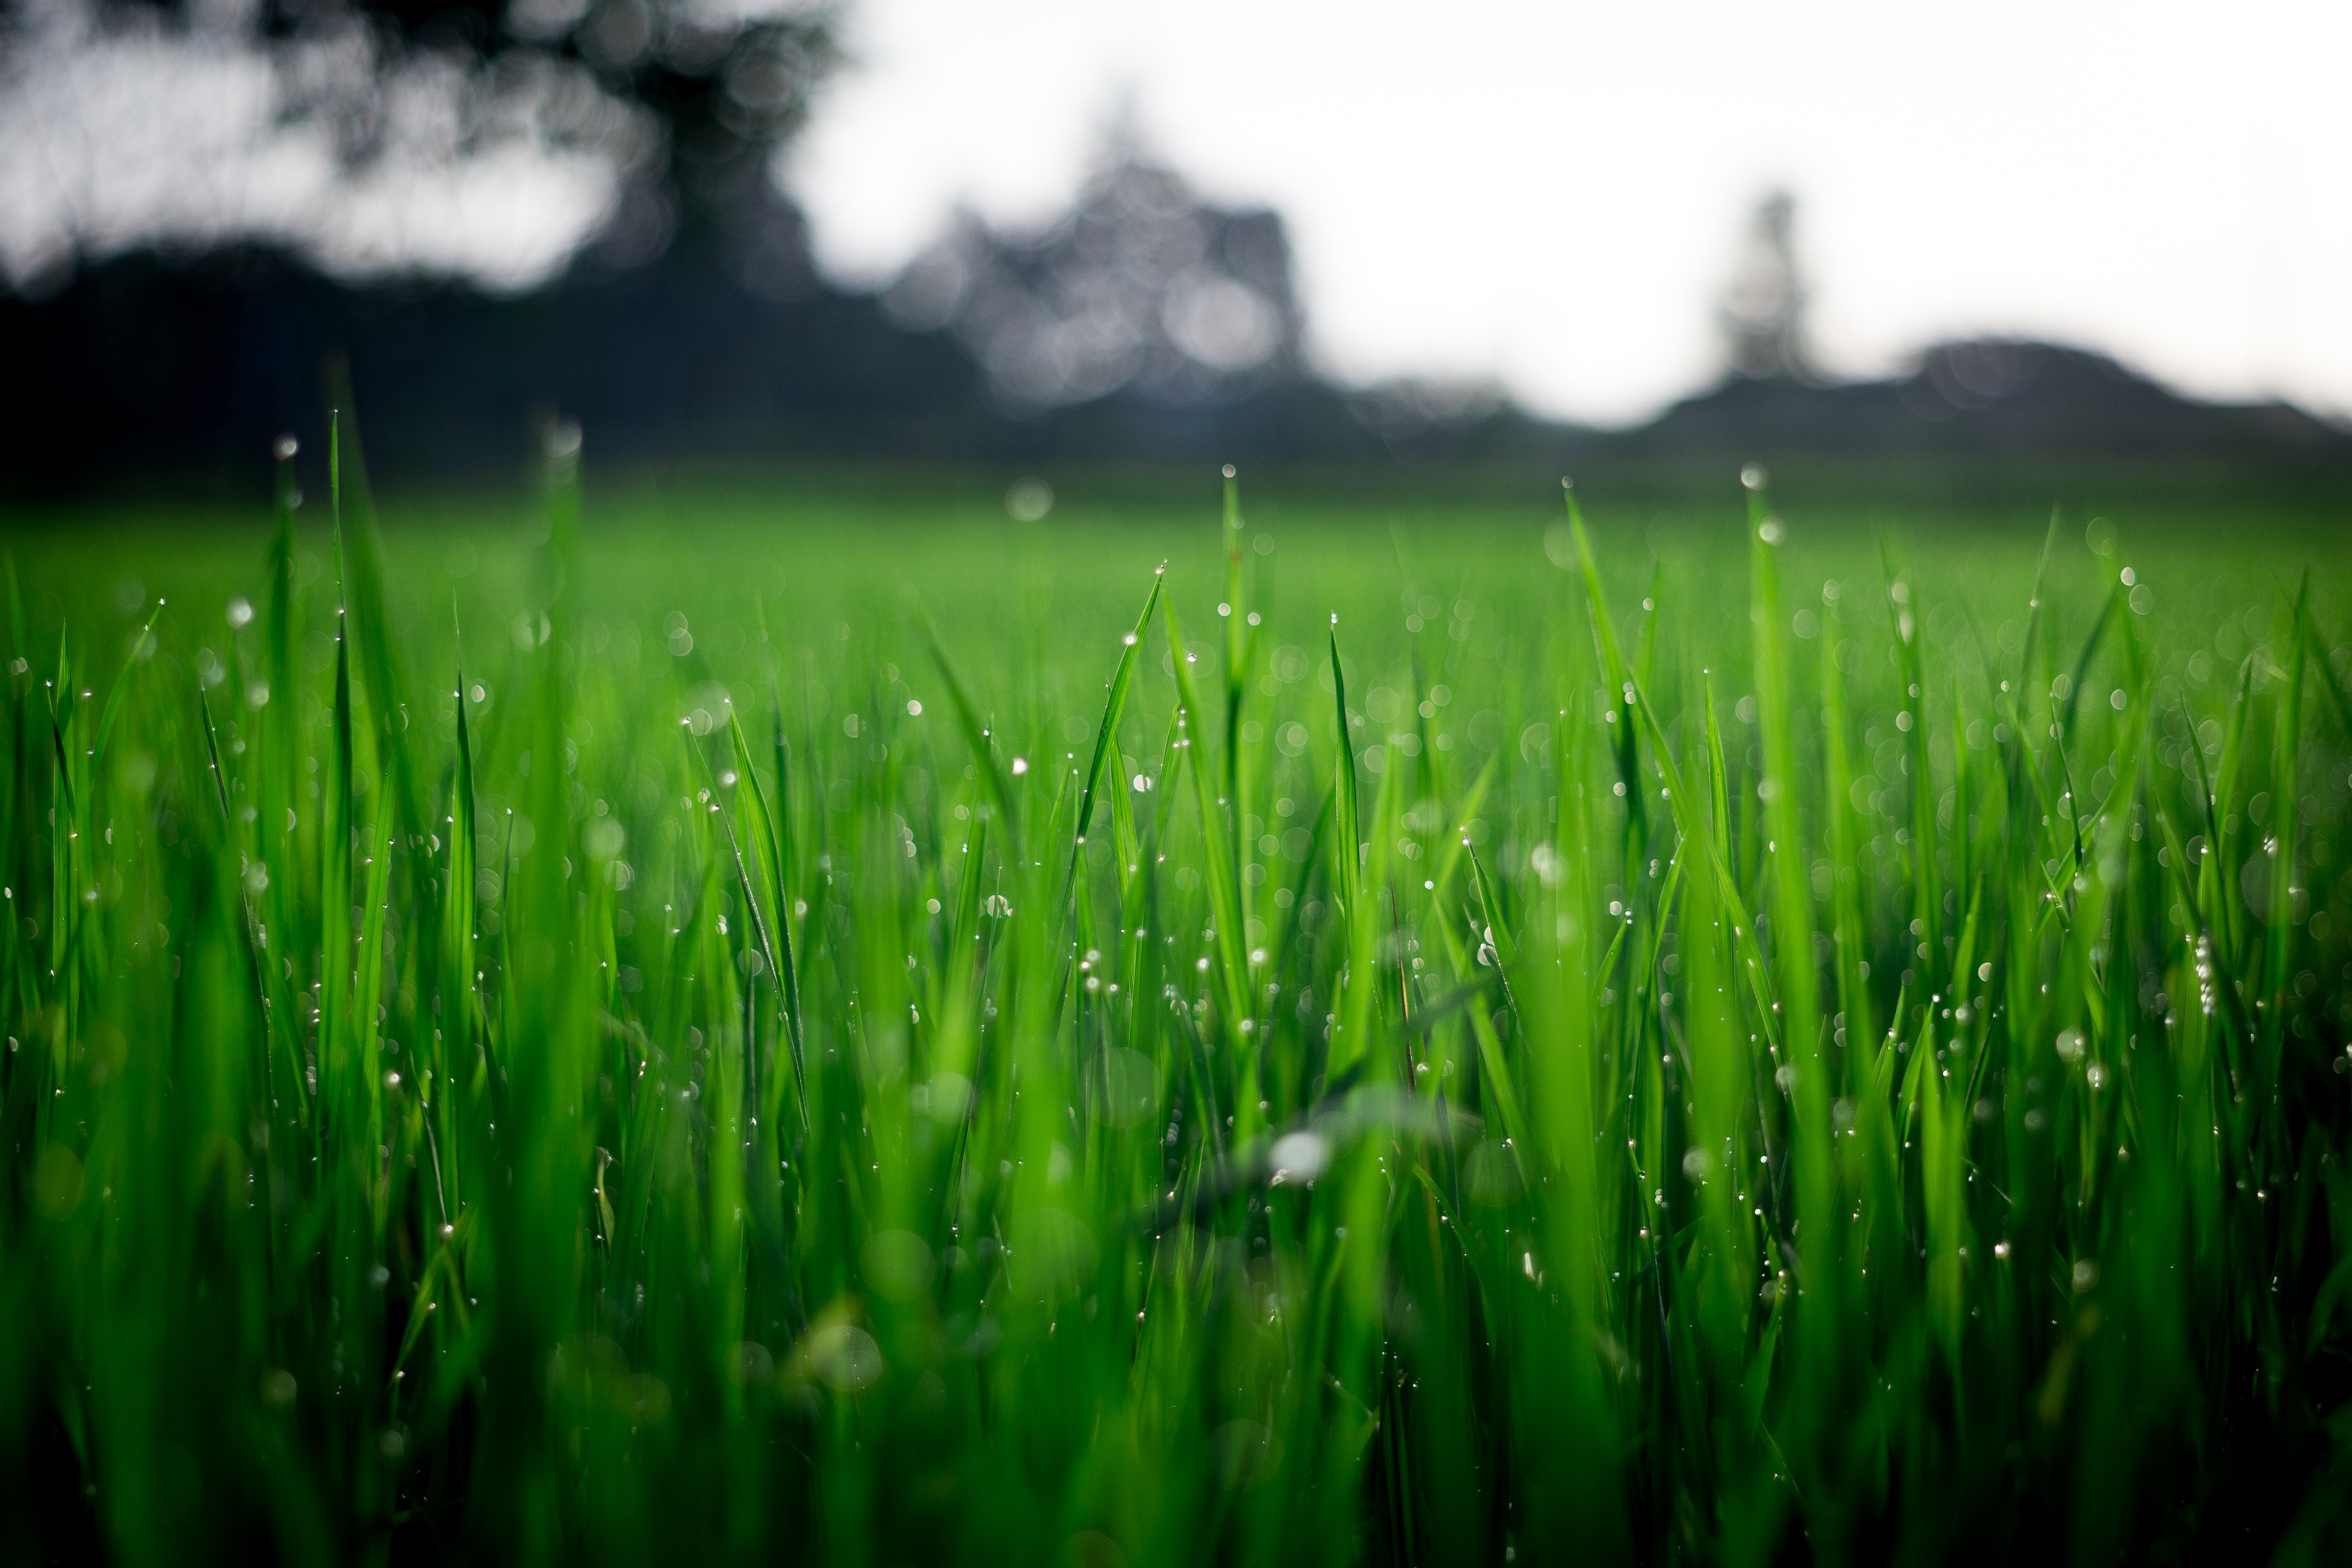 shallow-focus-photography-of-green-grasses-during-daytime-212324.jpg